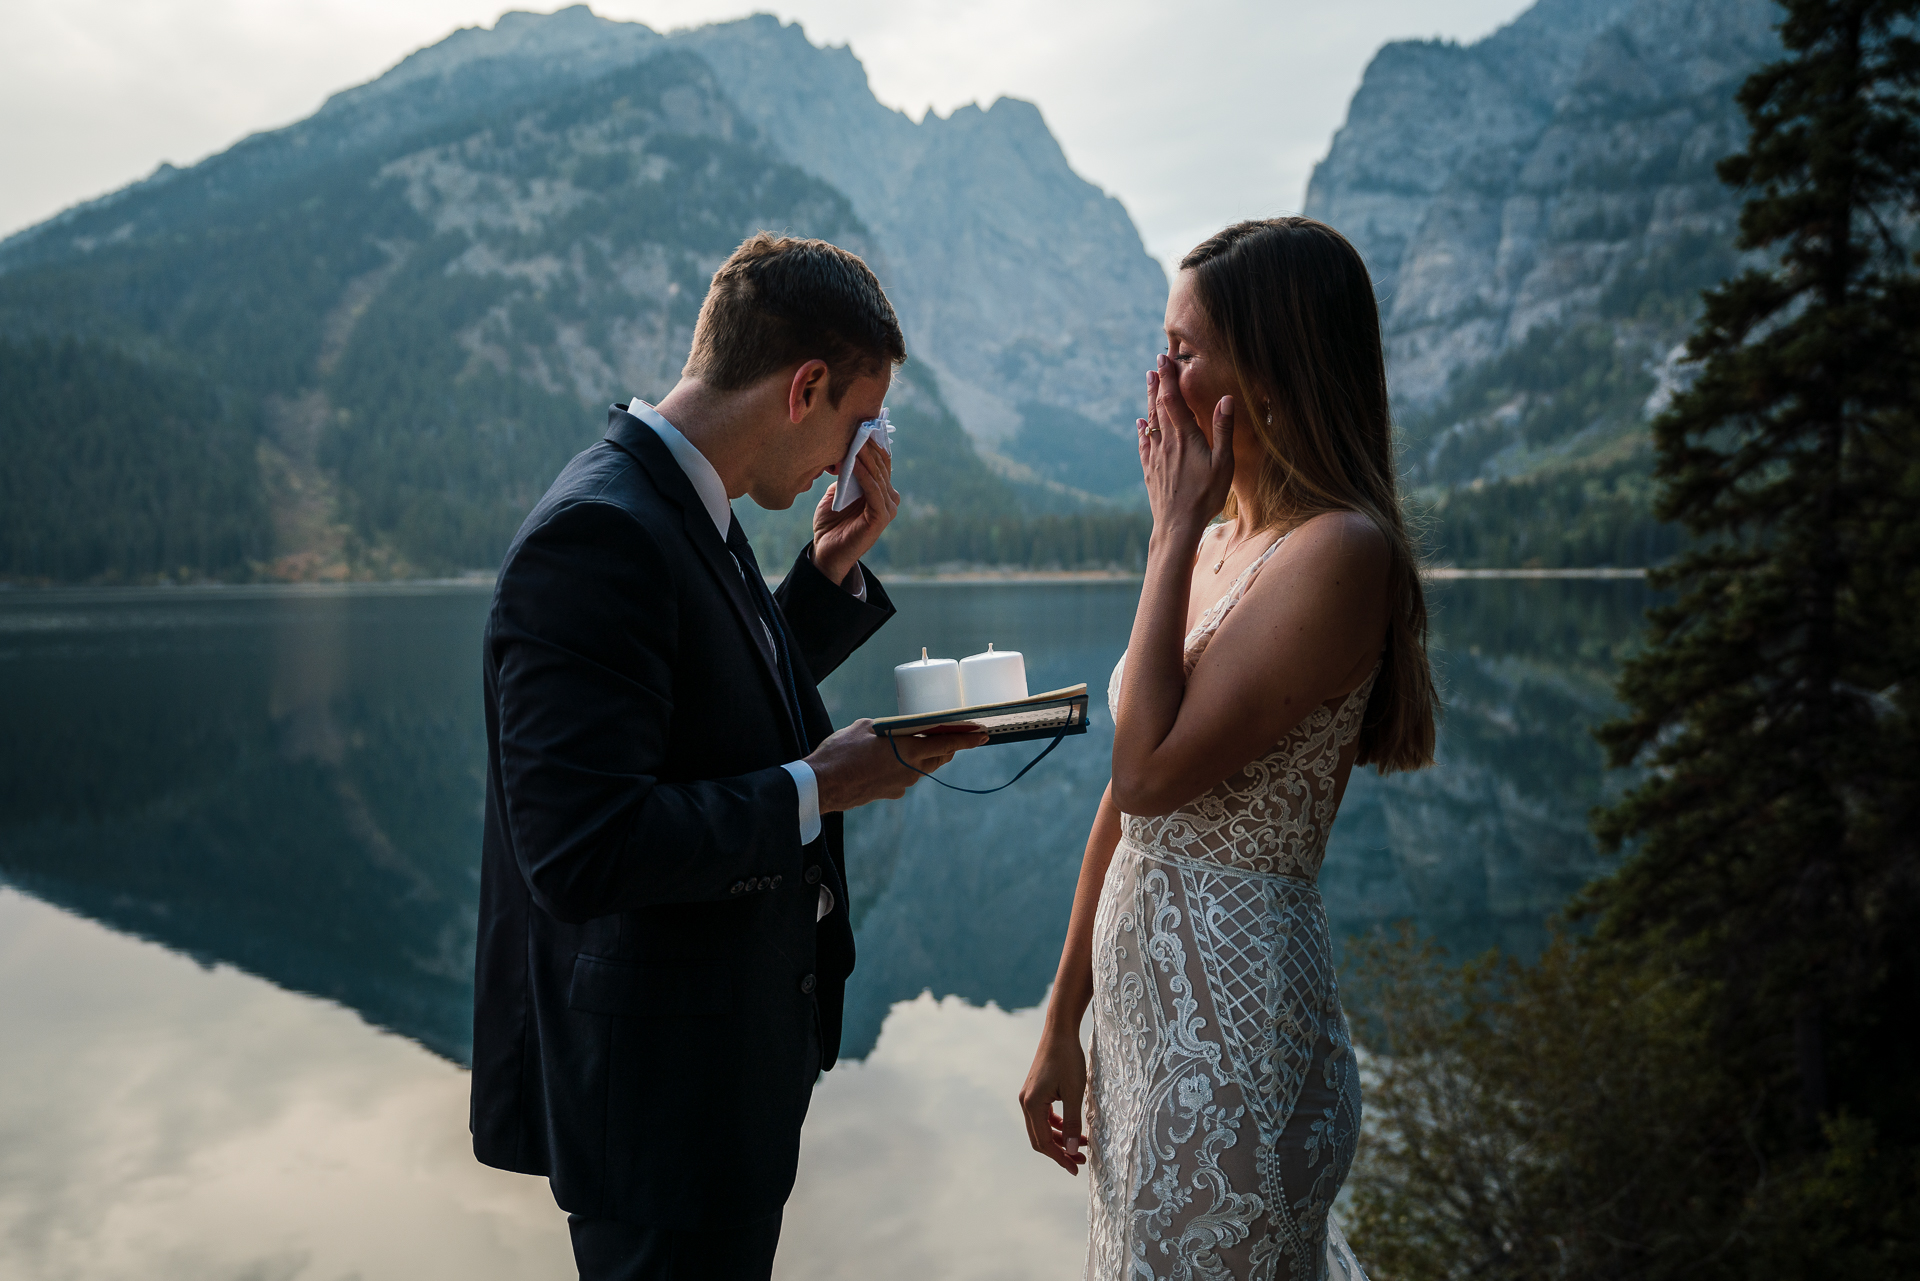 Grand Teton National Park Adventure Elopement Photographer | The couple wiping away tears during their vows